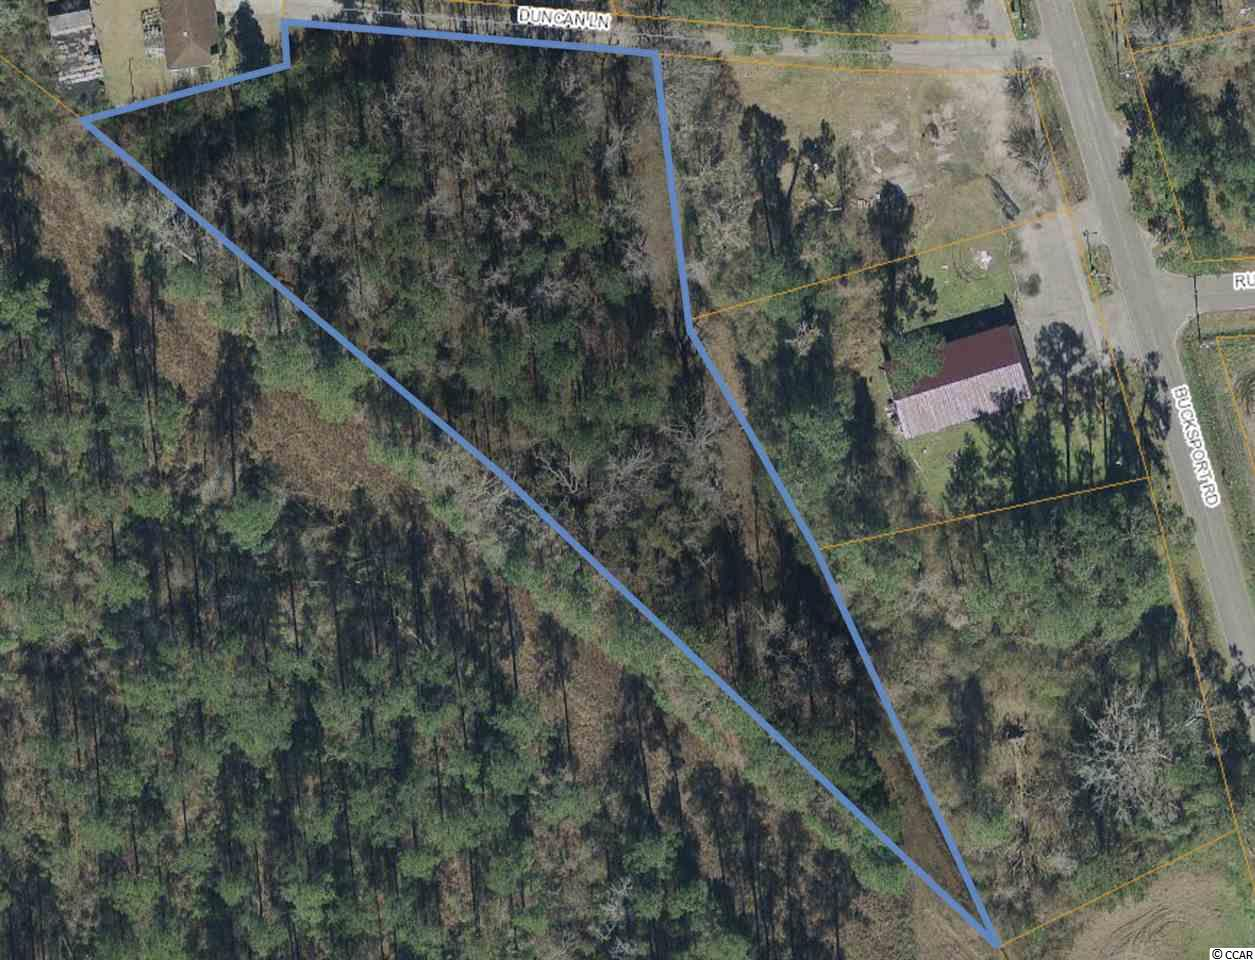 Great opportunity to own a lot just 4 minutes from Bucksport Marina , restaurants and live music venue! 2.45 acres lot on a dead end road, no HOA, and no restrictions! Lots of privacy and great location with easy access to the Intra Coastal Waterway and Waccamaw River.